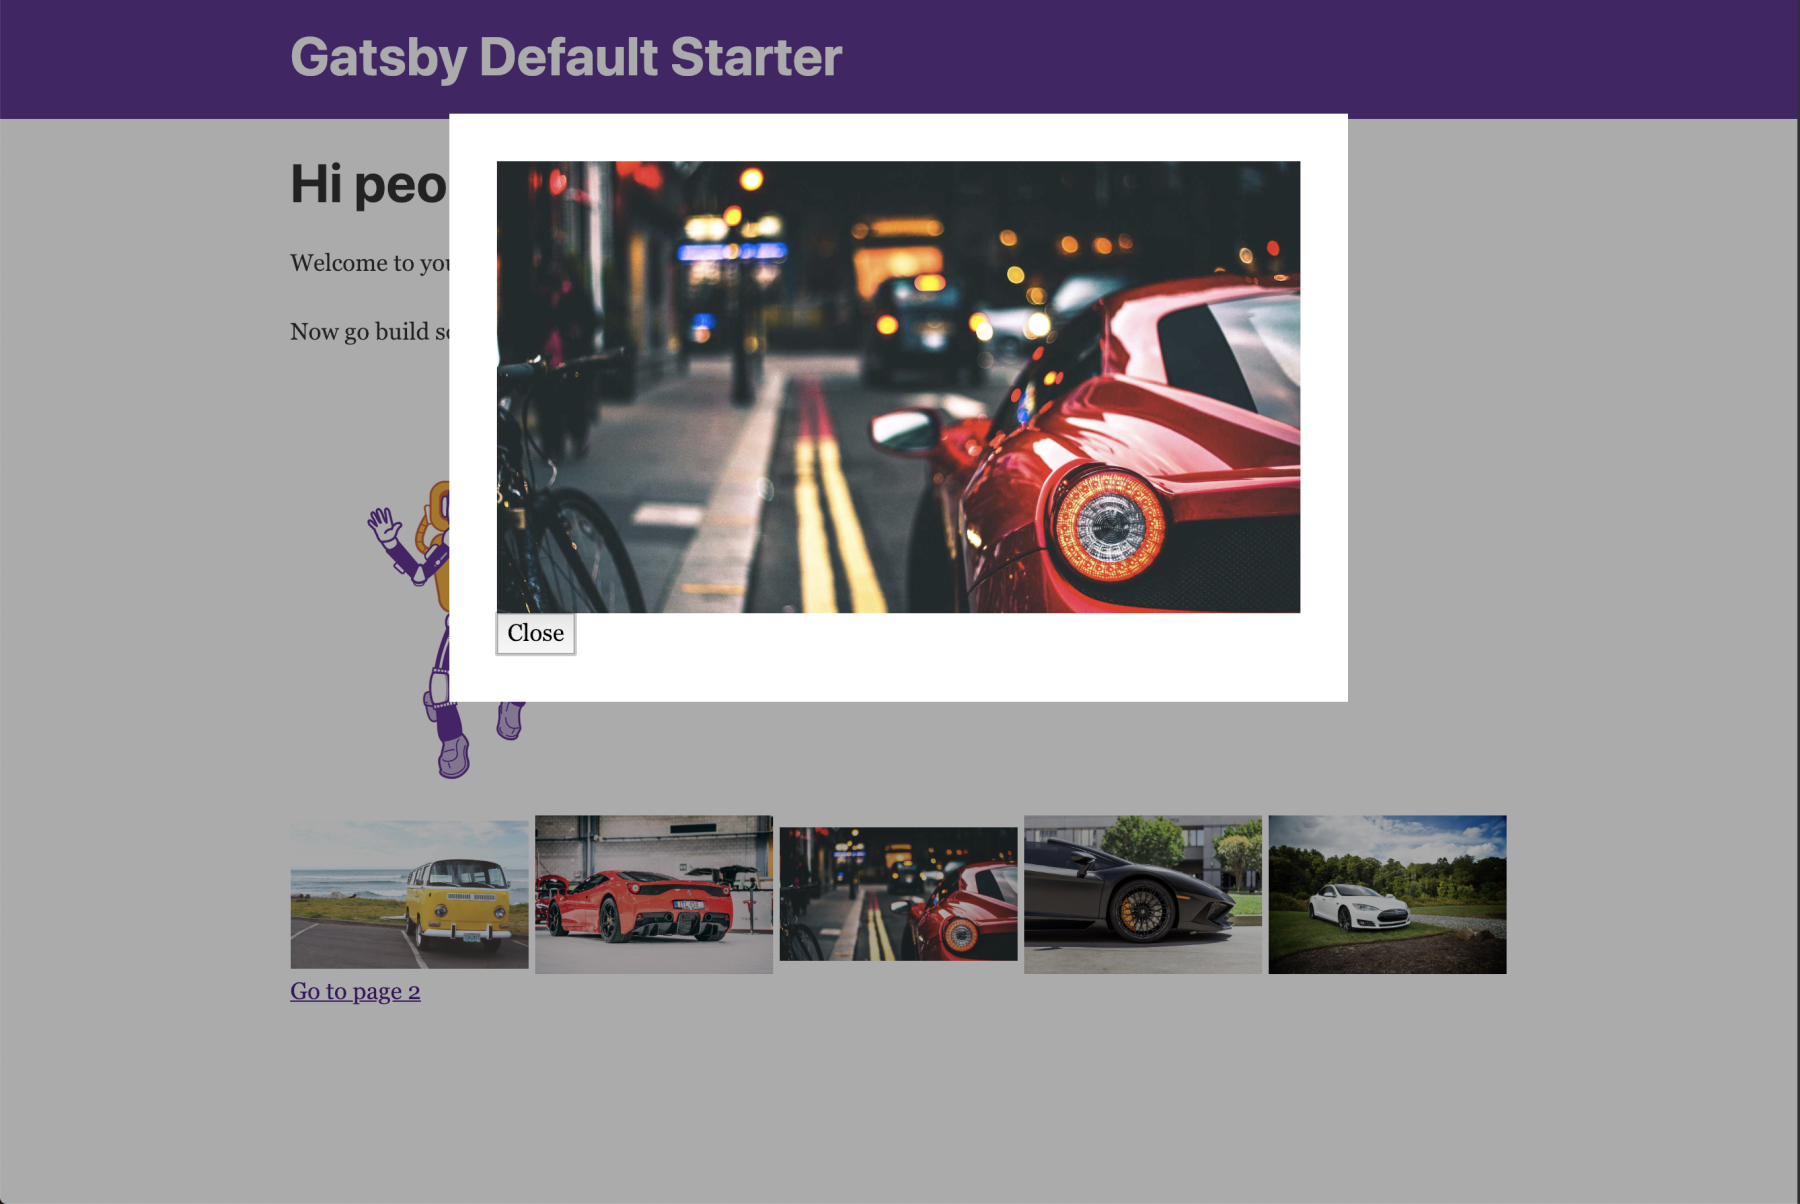 Building a custom, accessible image lightbox in GatsbyJS - 416serg